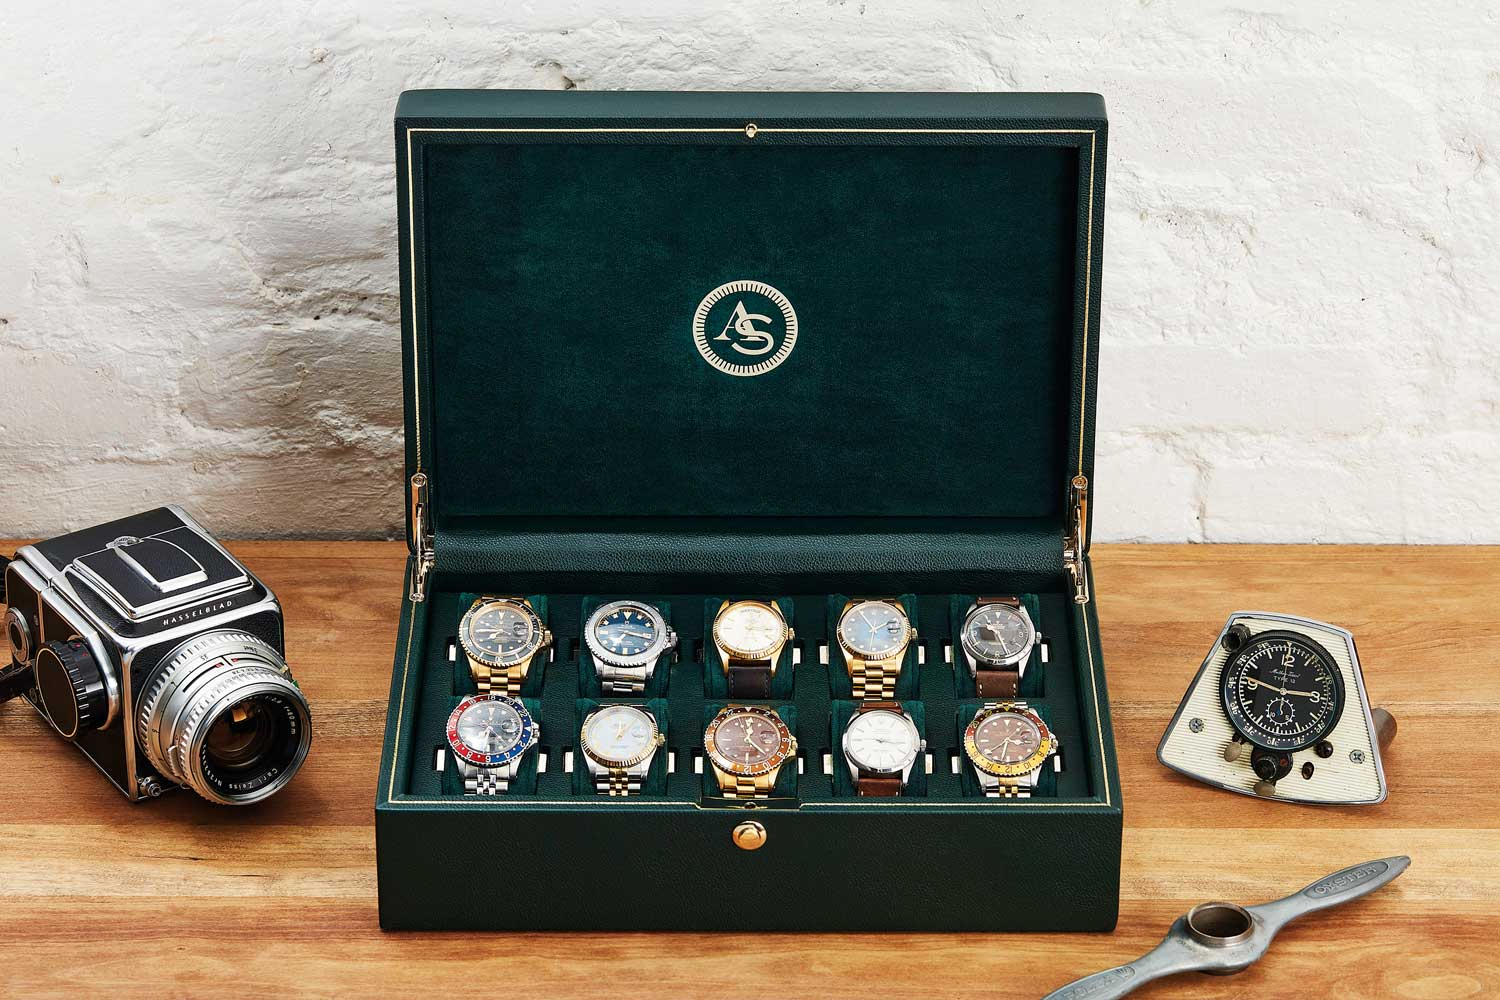 Vintage Collection, a 10-piece watch storage box and a watch strap valet tray, finished in vibrant green with gold trim made in collaboration with Analog/Shift